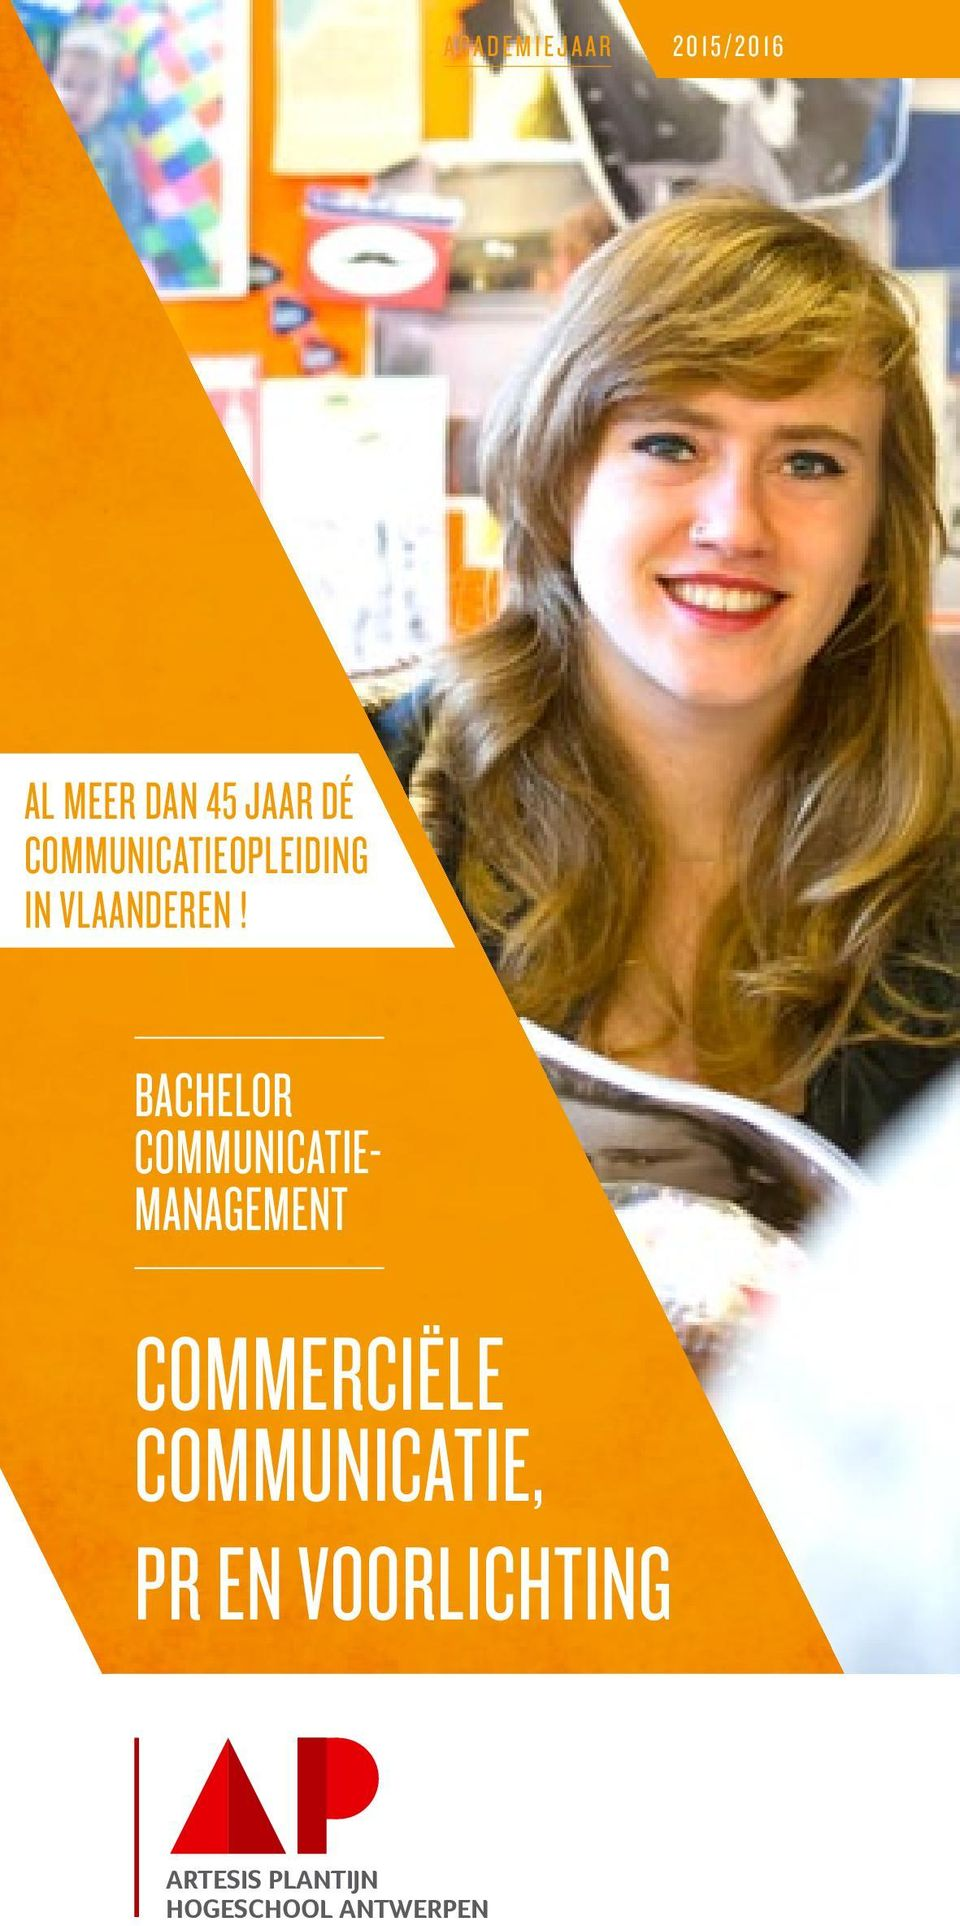 bachelor communicatiemanagement commerciële